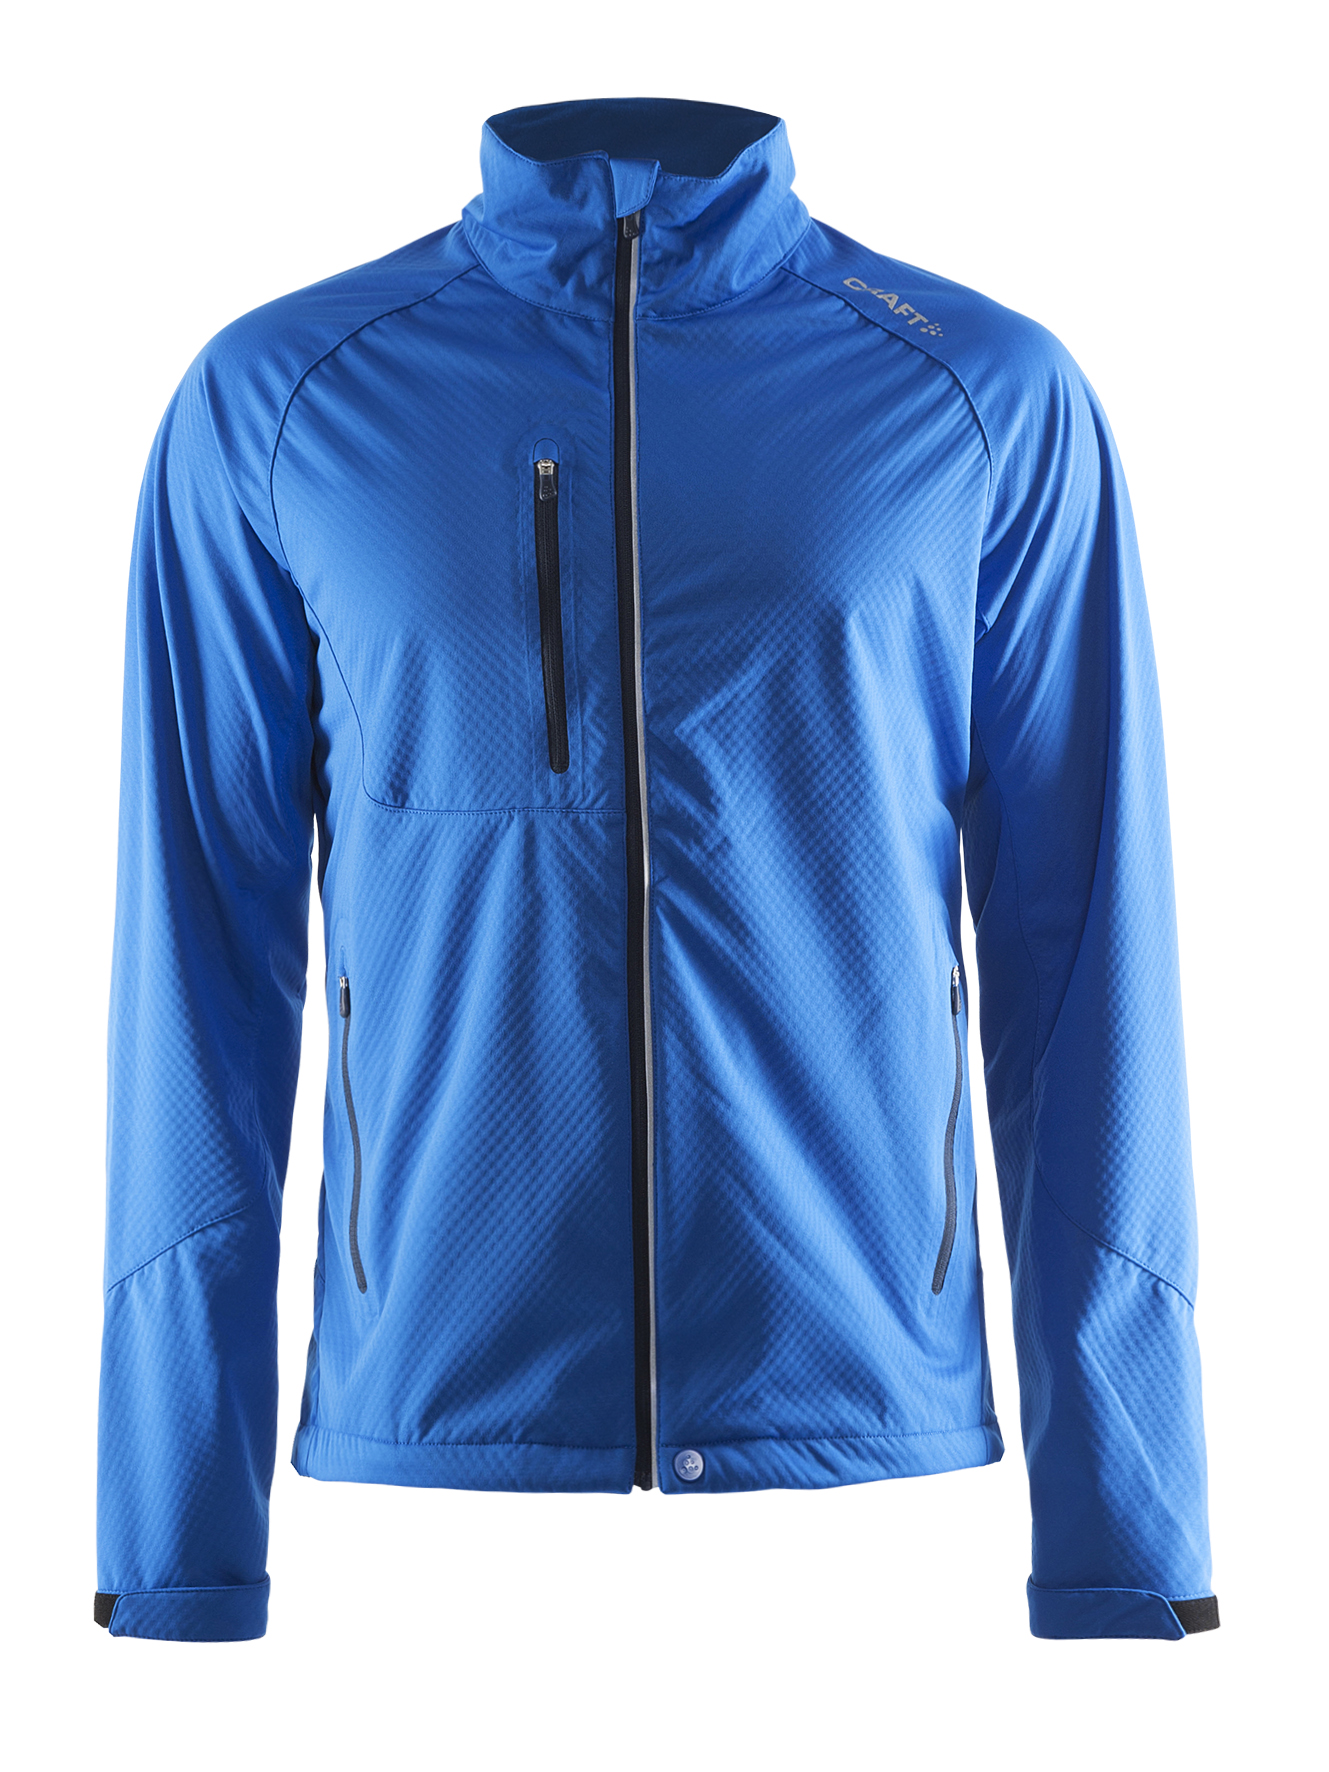 Craft Bormio Soft Shell Jacket M Sweden Blue